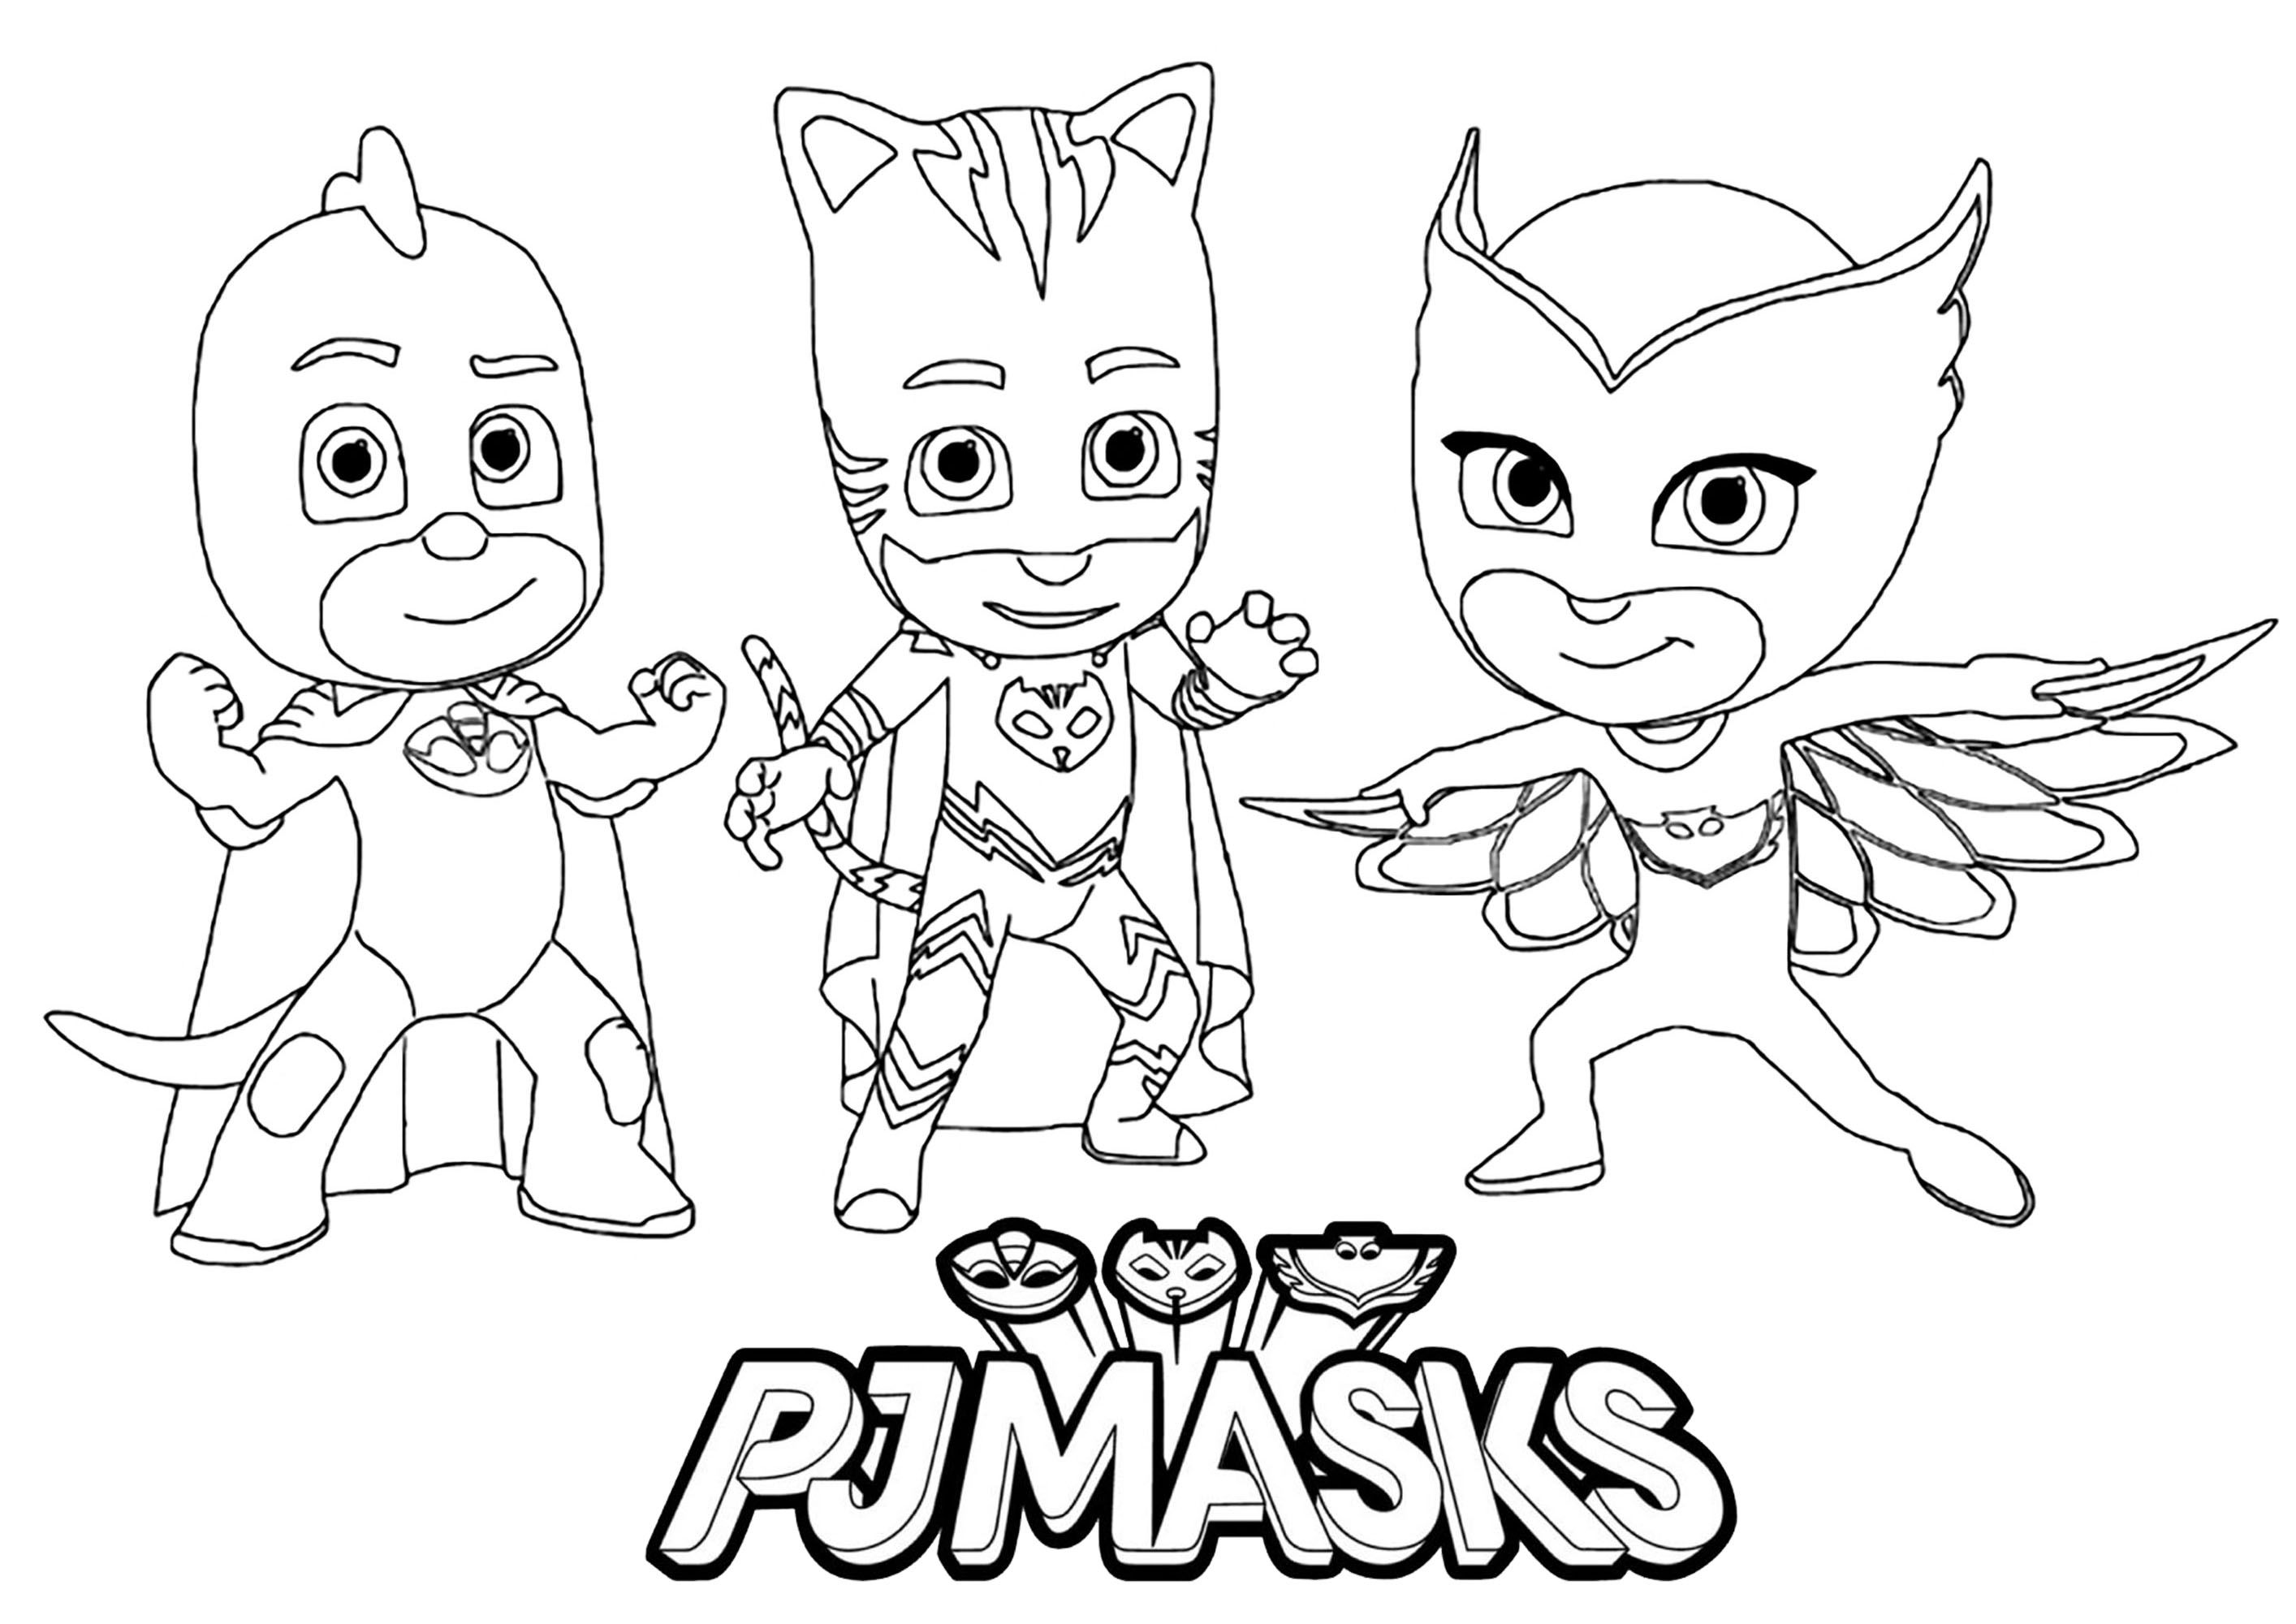 Desenhos Do Pj Masks Para Colorir E Imprimir Cartoon Coloring